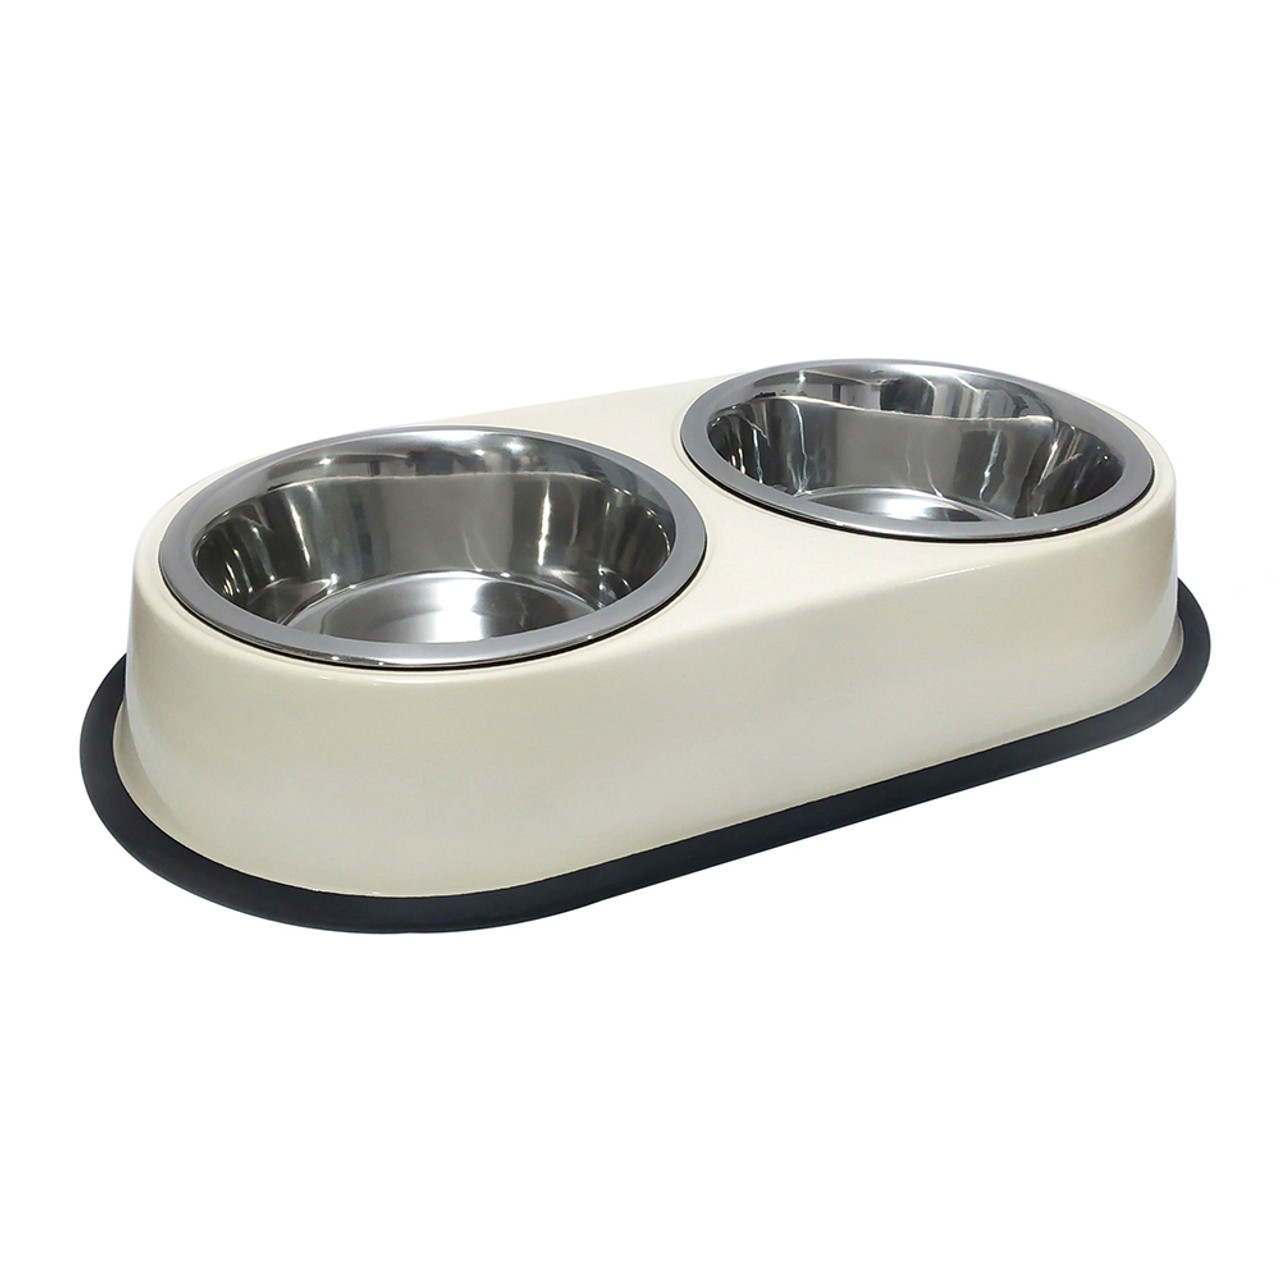 Dineasty Double Diner Stainless Steel Dog Bowl Set